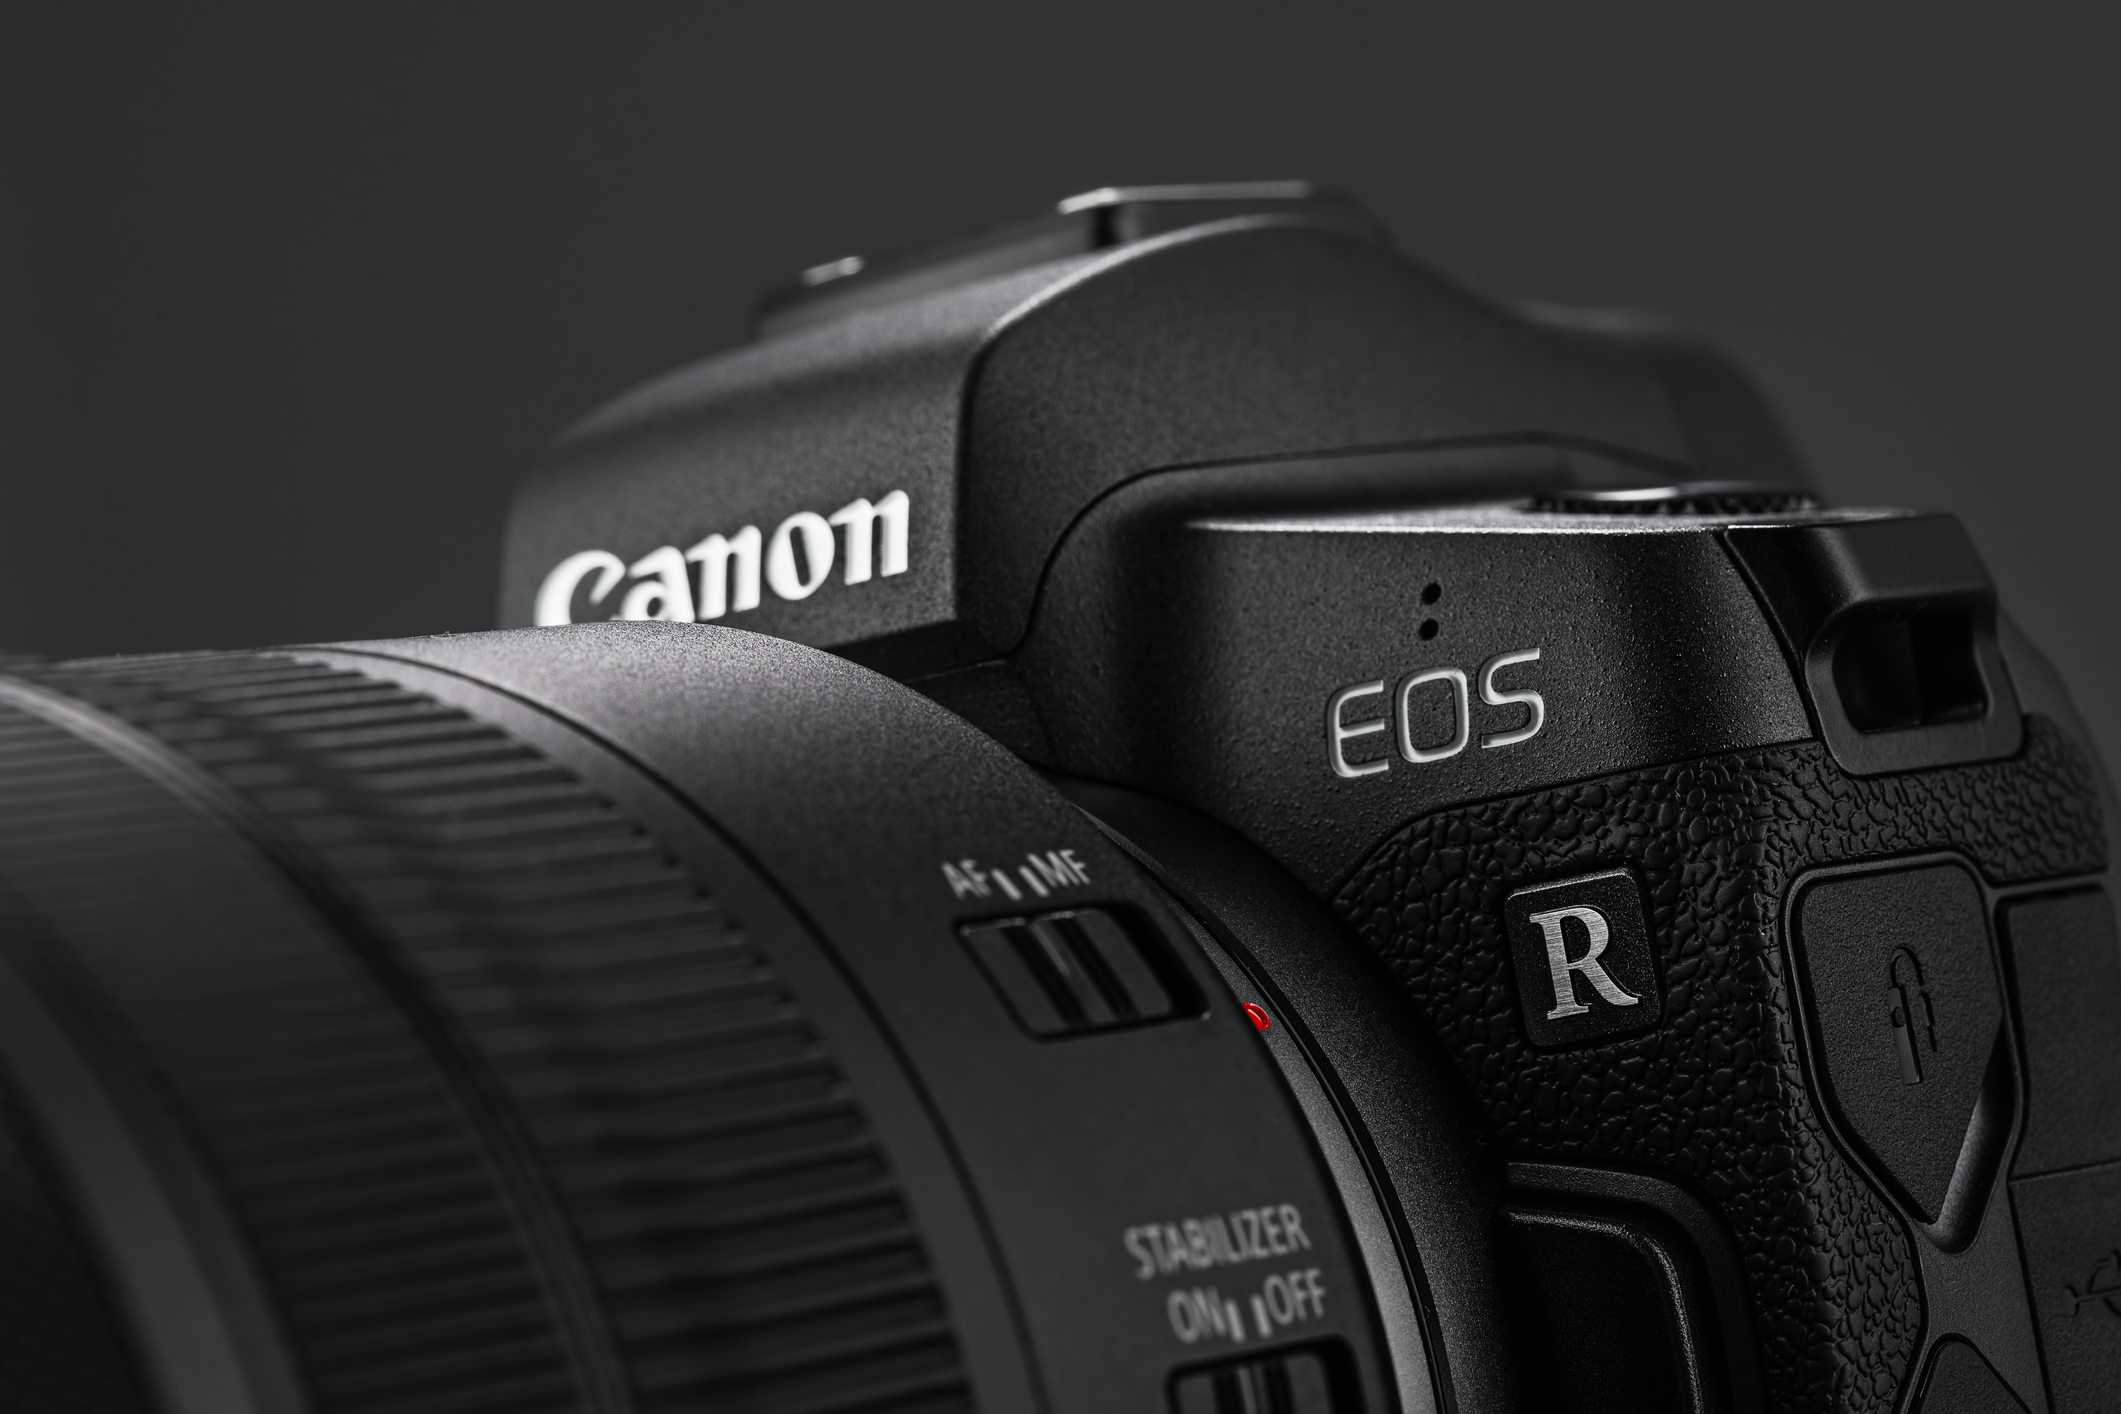 Canon is Developing 3 New EOS R Cameras image